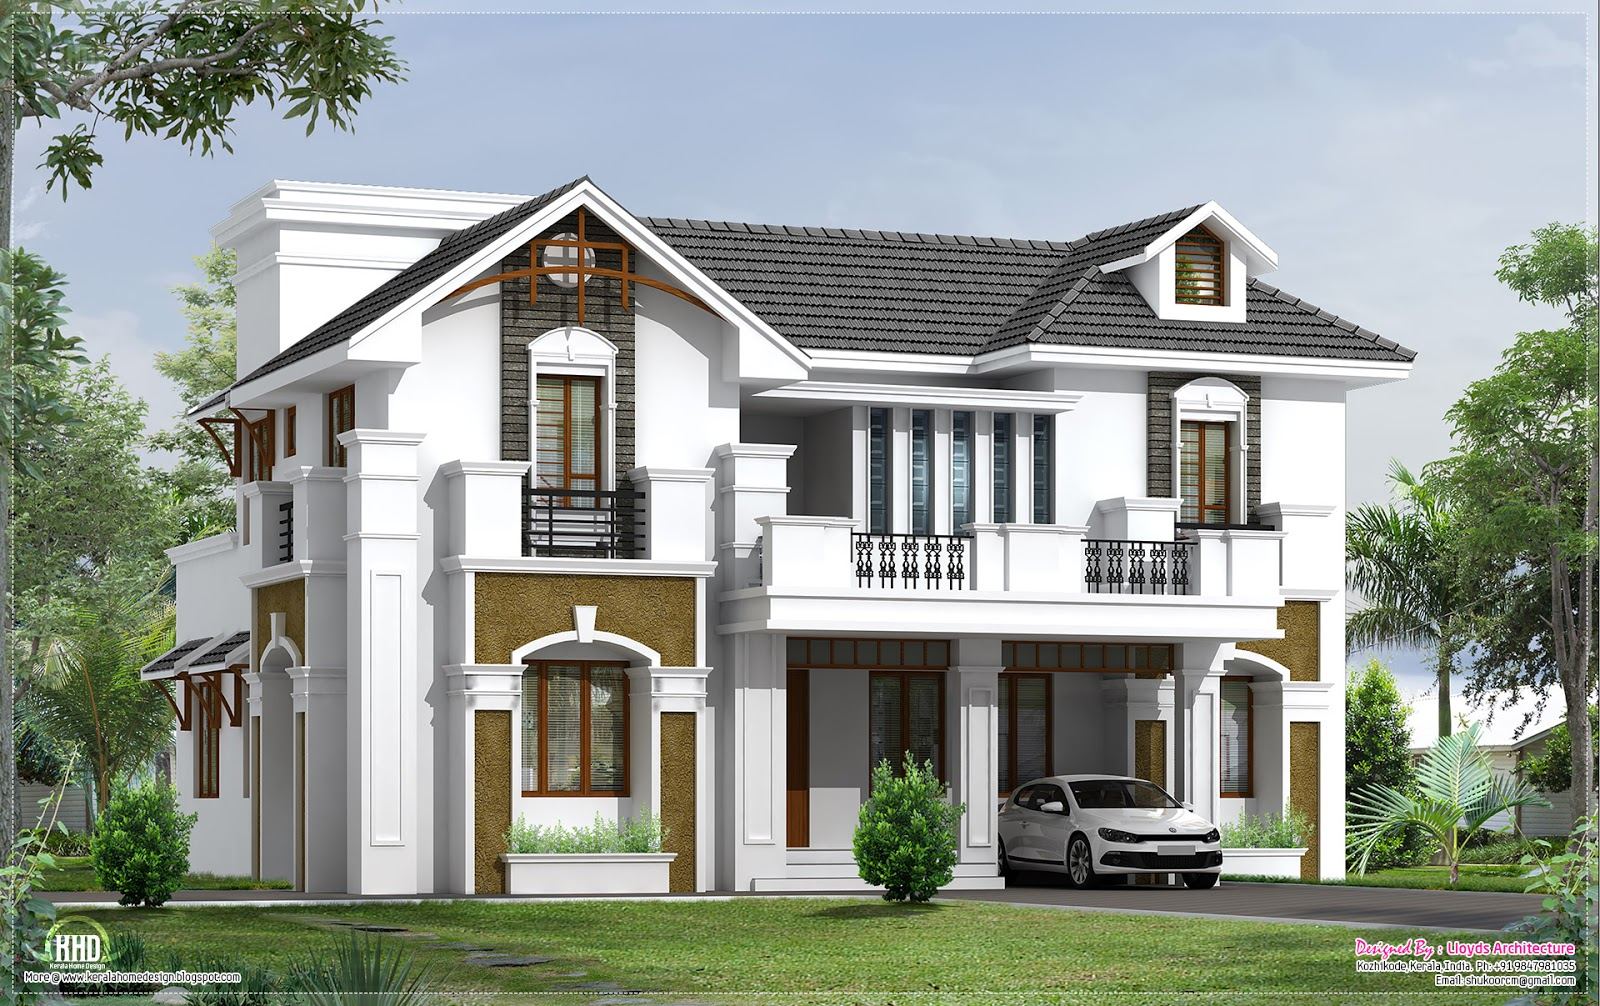 3d view of 2200 square feet villa house design plans 3d view home design